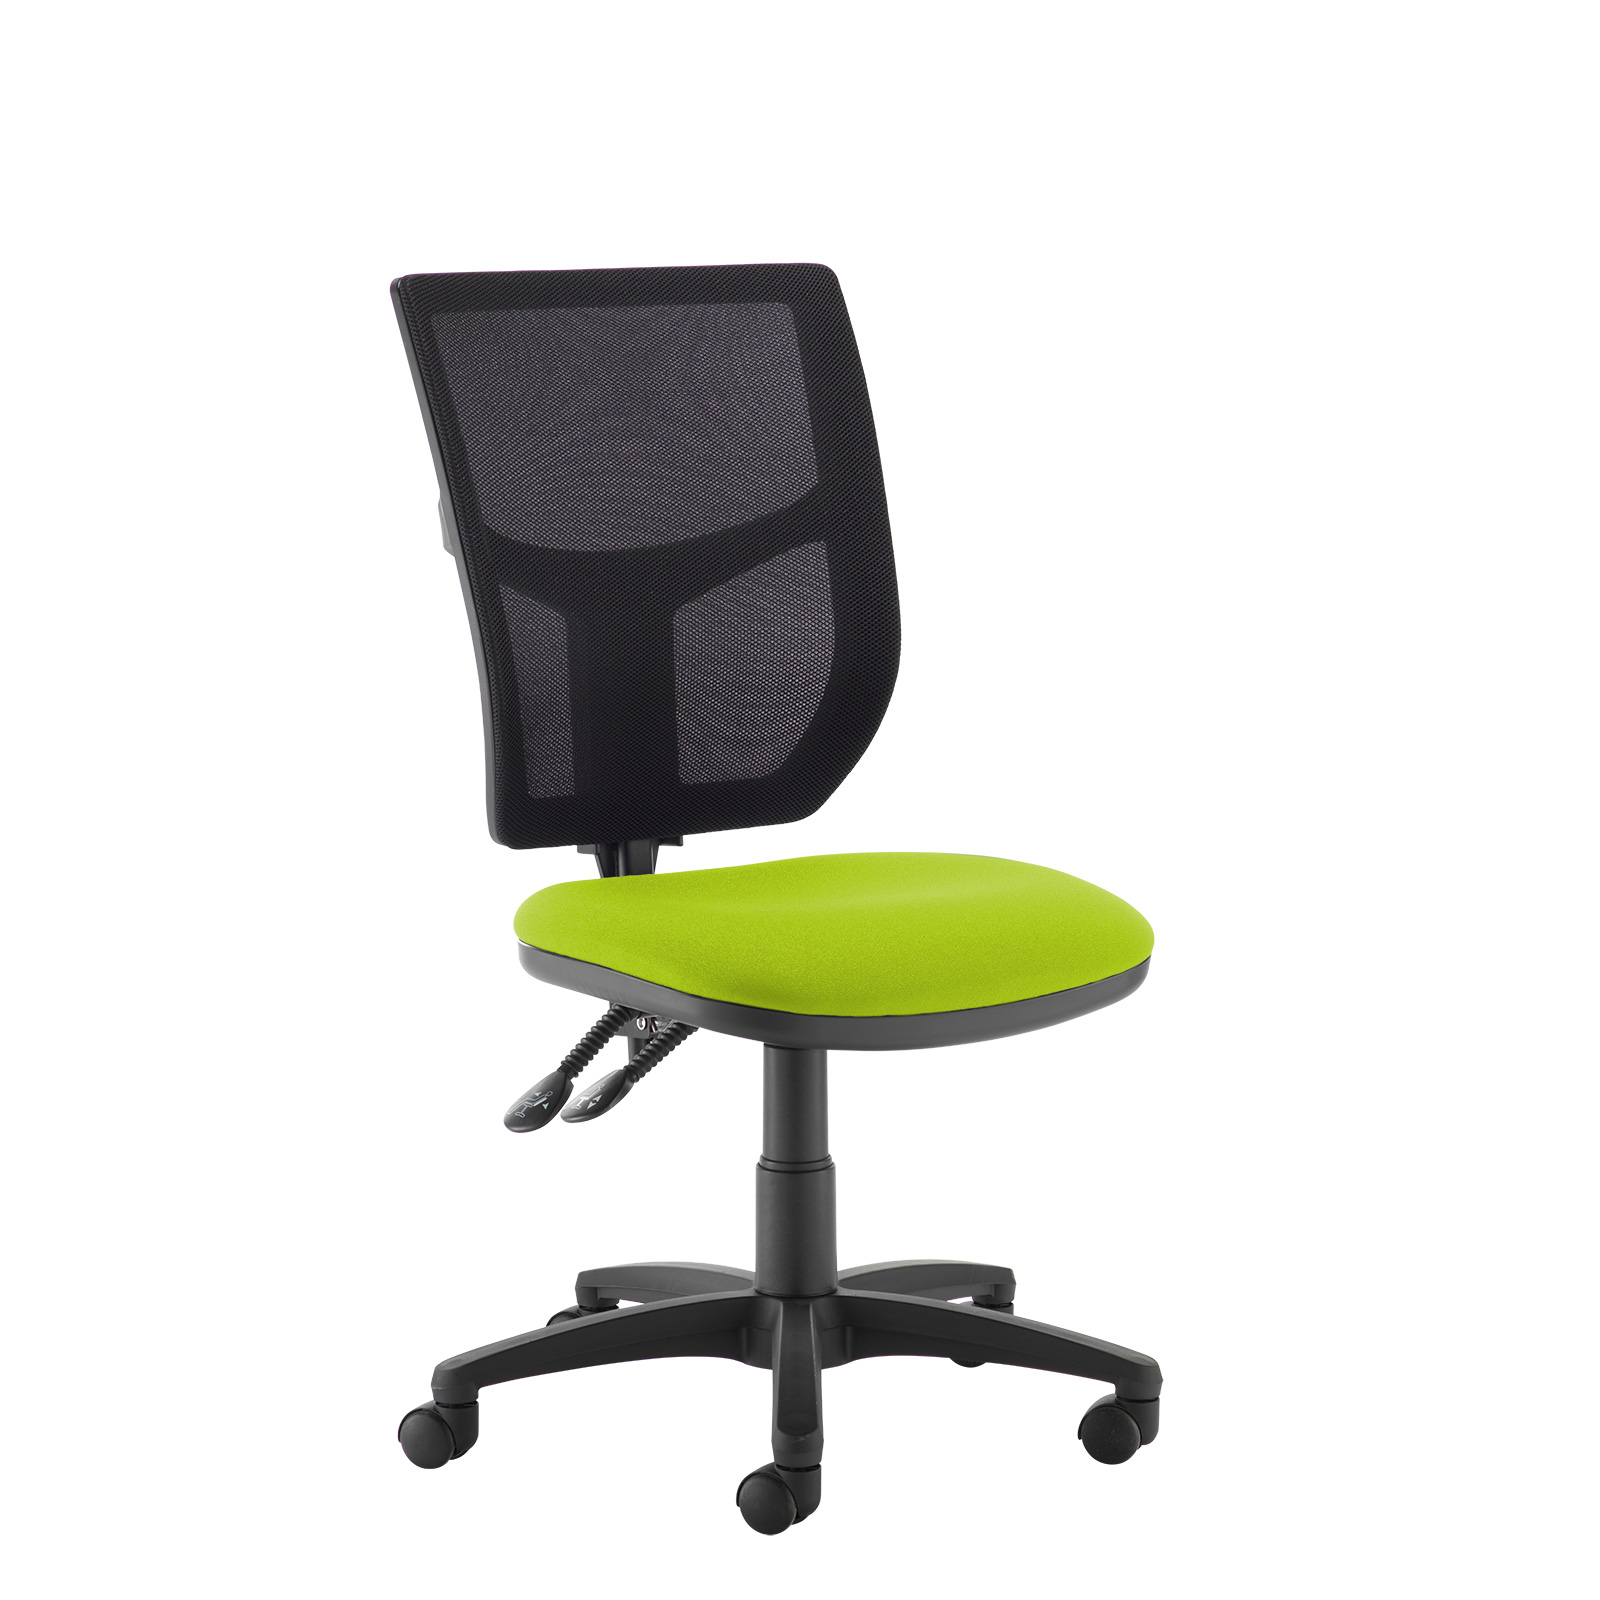 Altino 2 lever high mesh back operators chair with no arms - green